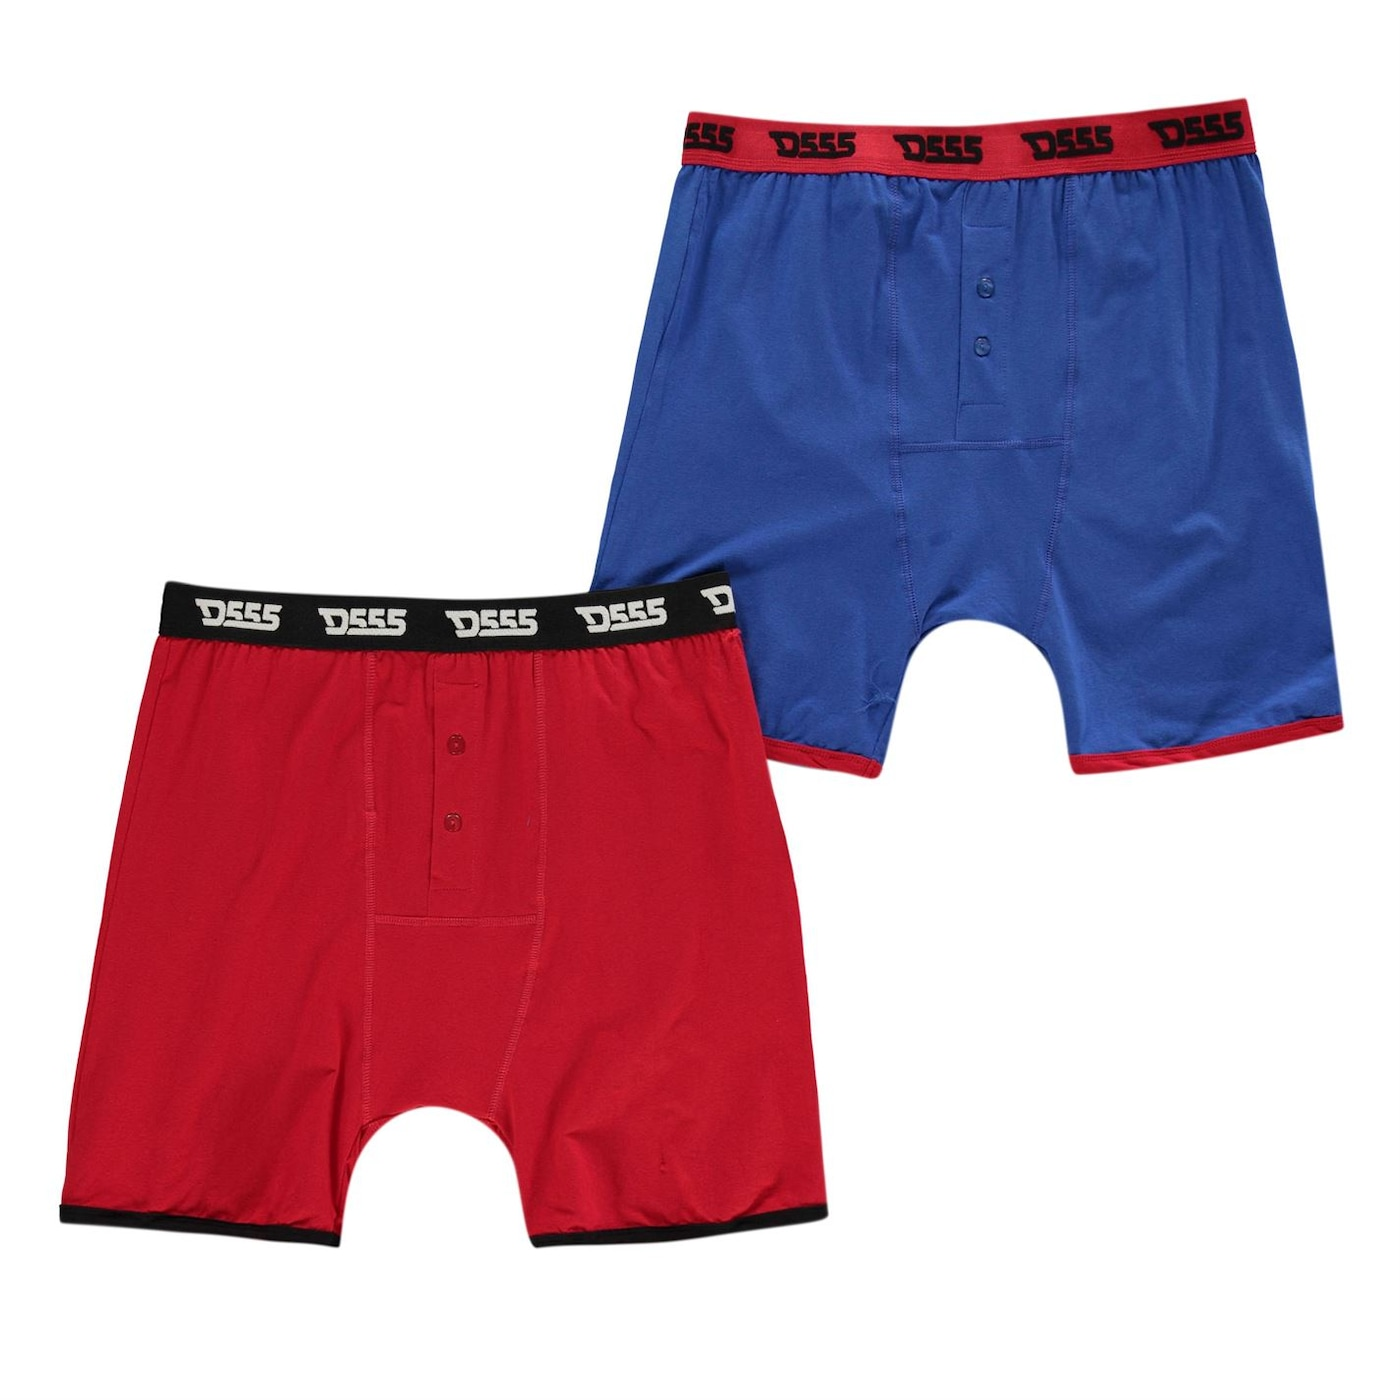 D555 Novelty 2 Pack Boxers Mens